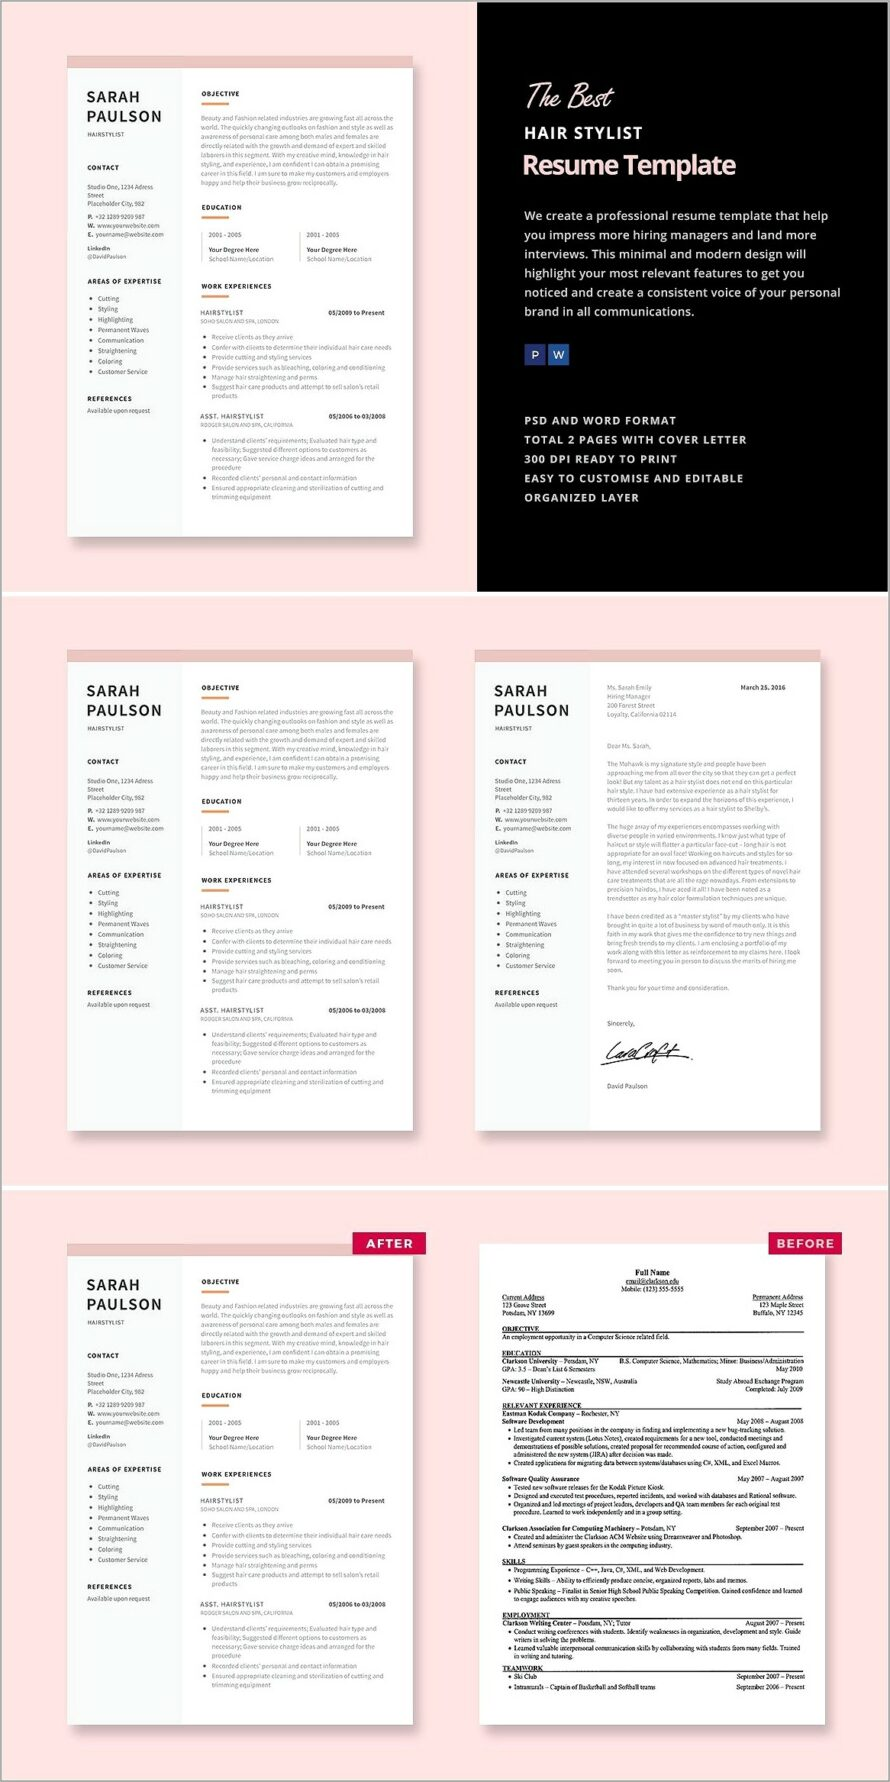 Hair Stylist Resume Template Word